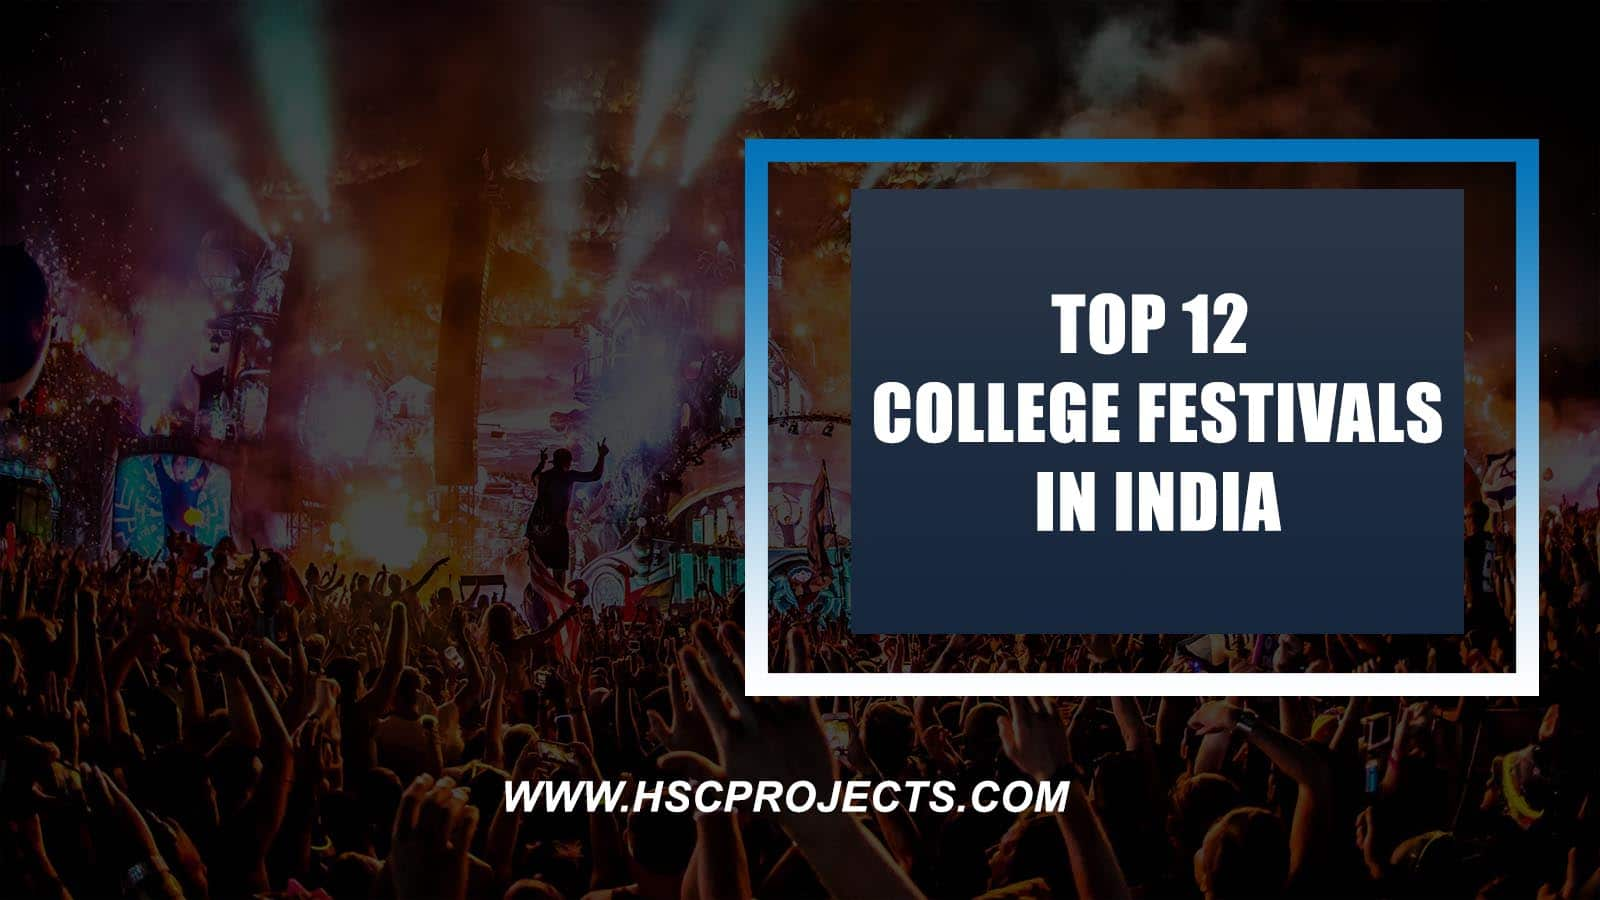 Top 12 College Festivals in India, HSC Projects